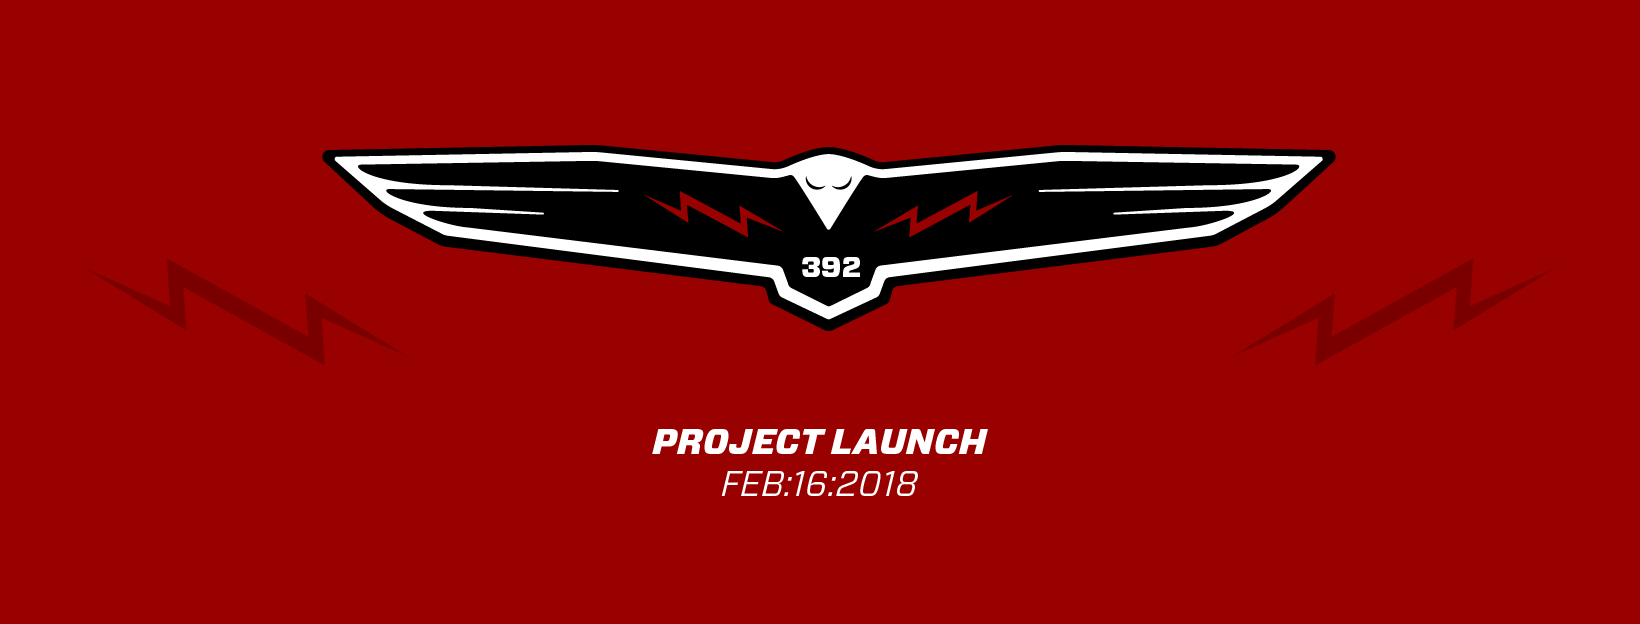 HELLHAWK-Project-Launch.png